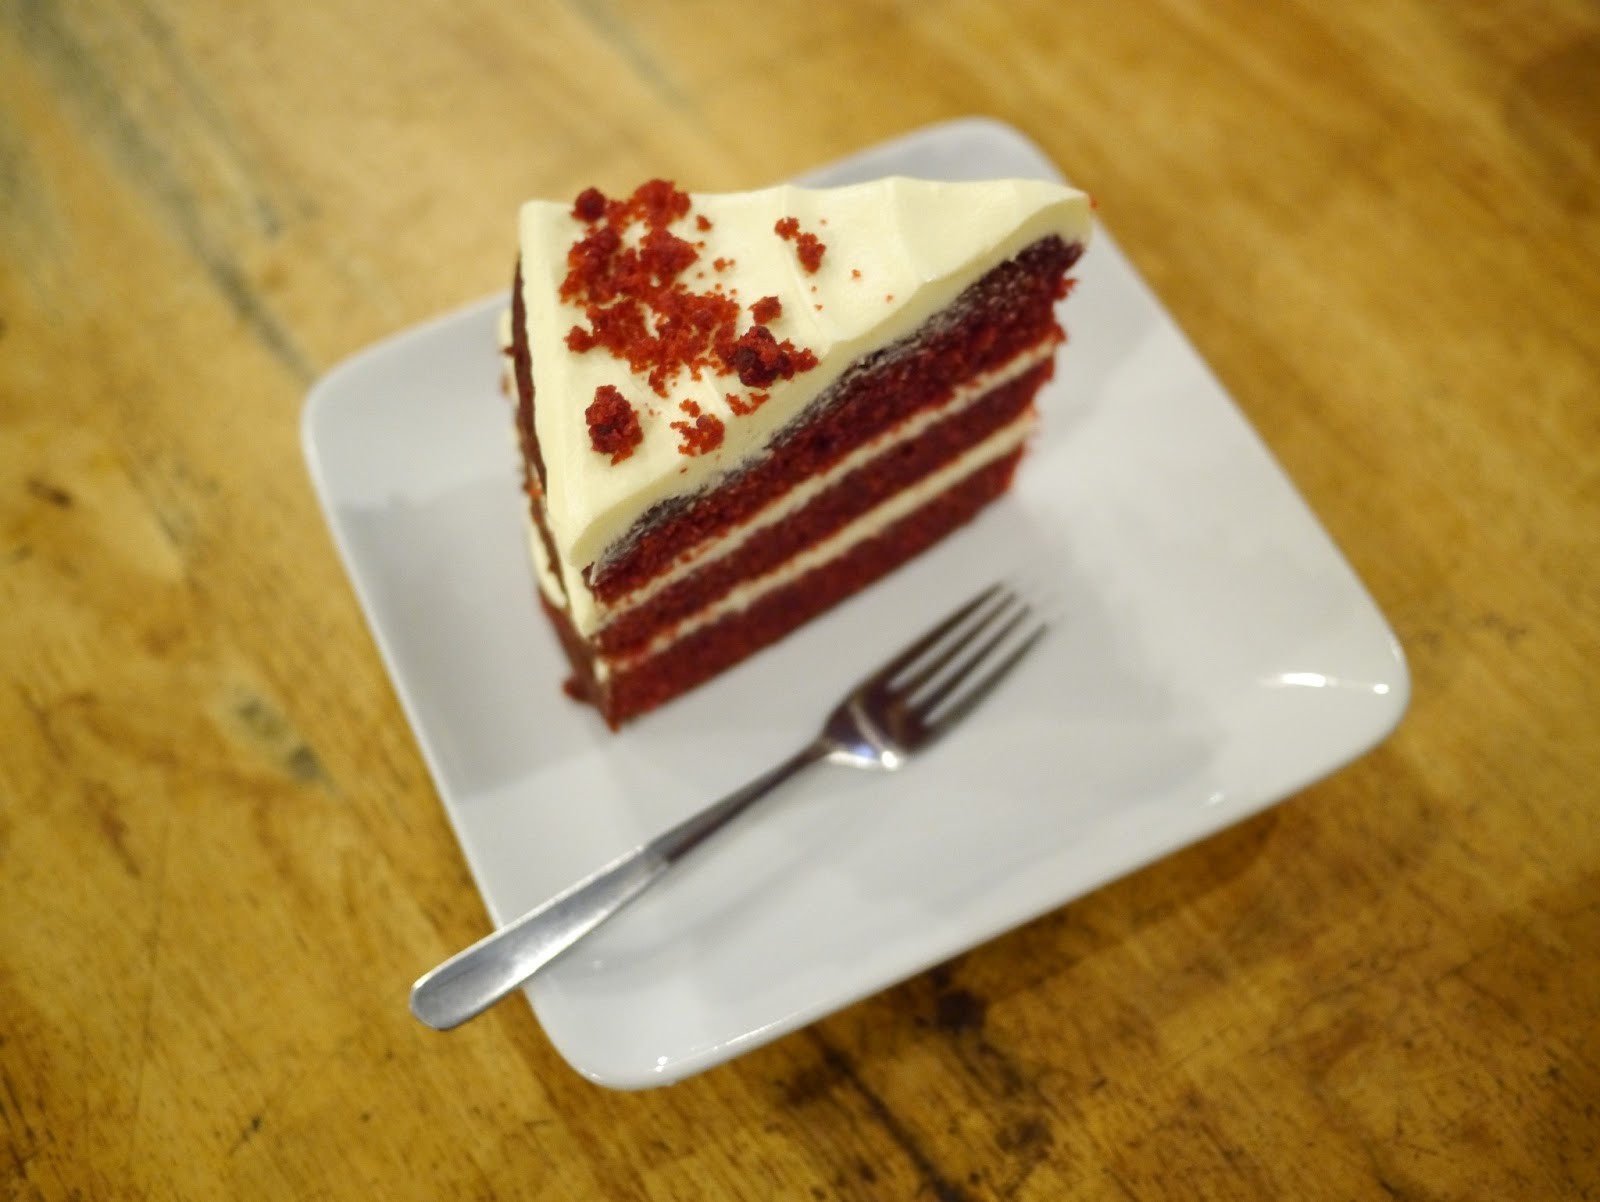 Red velvet cake from Souka.